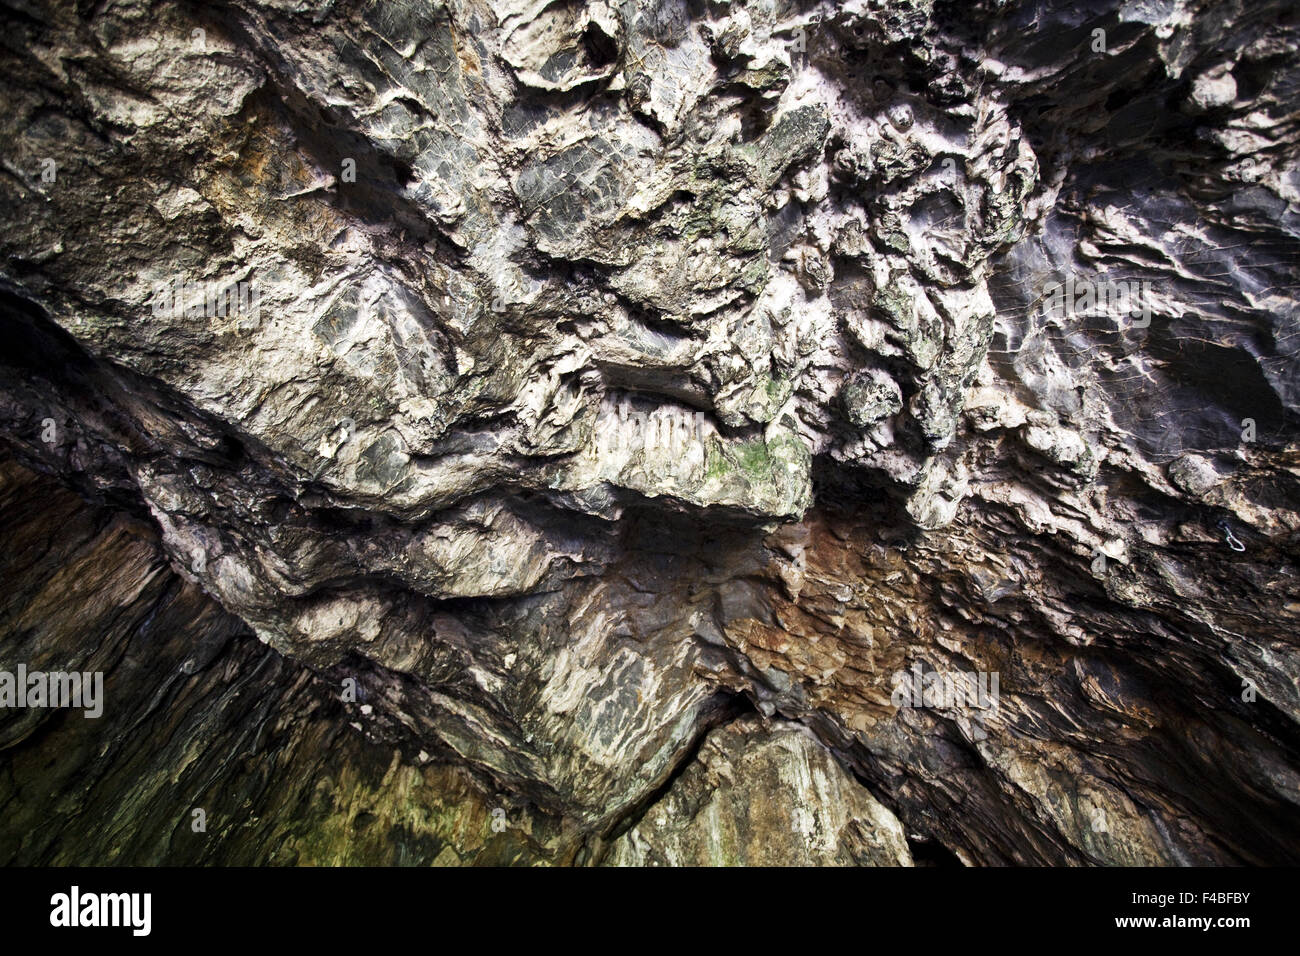 the cave 'Hohler Stein', Ruethen, Germany - Stock Image